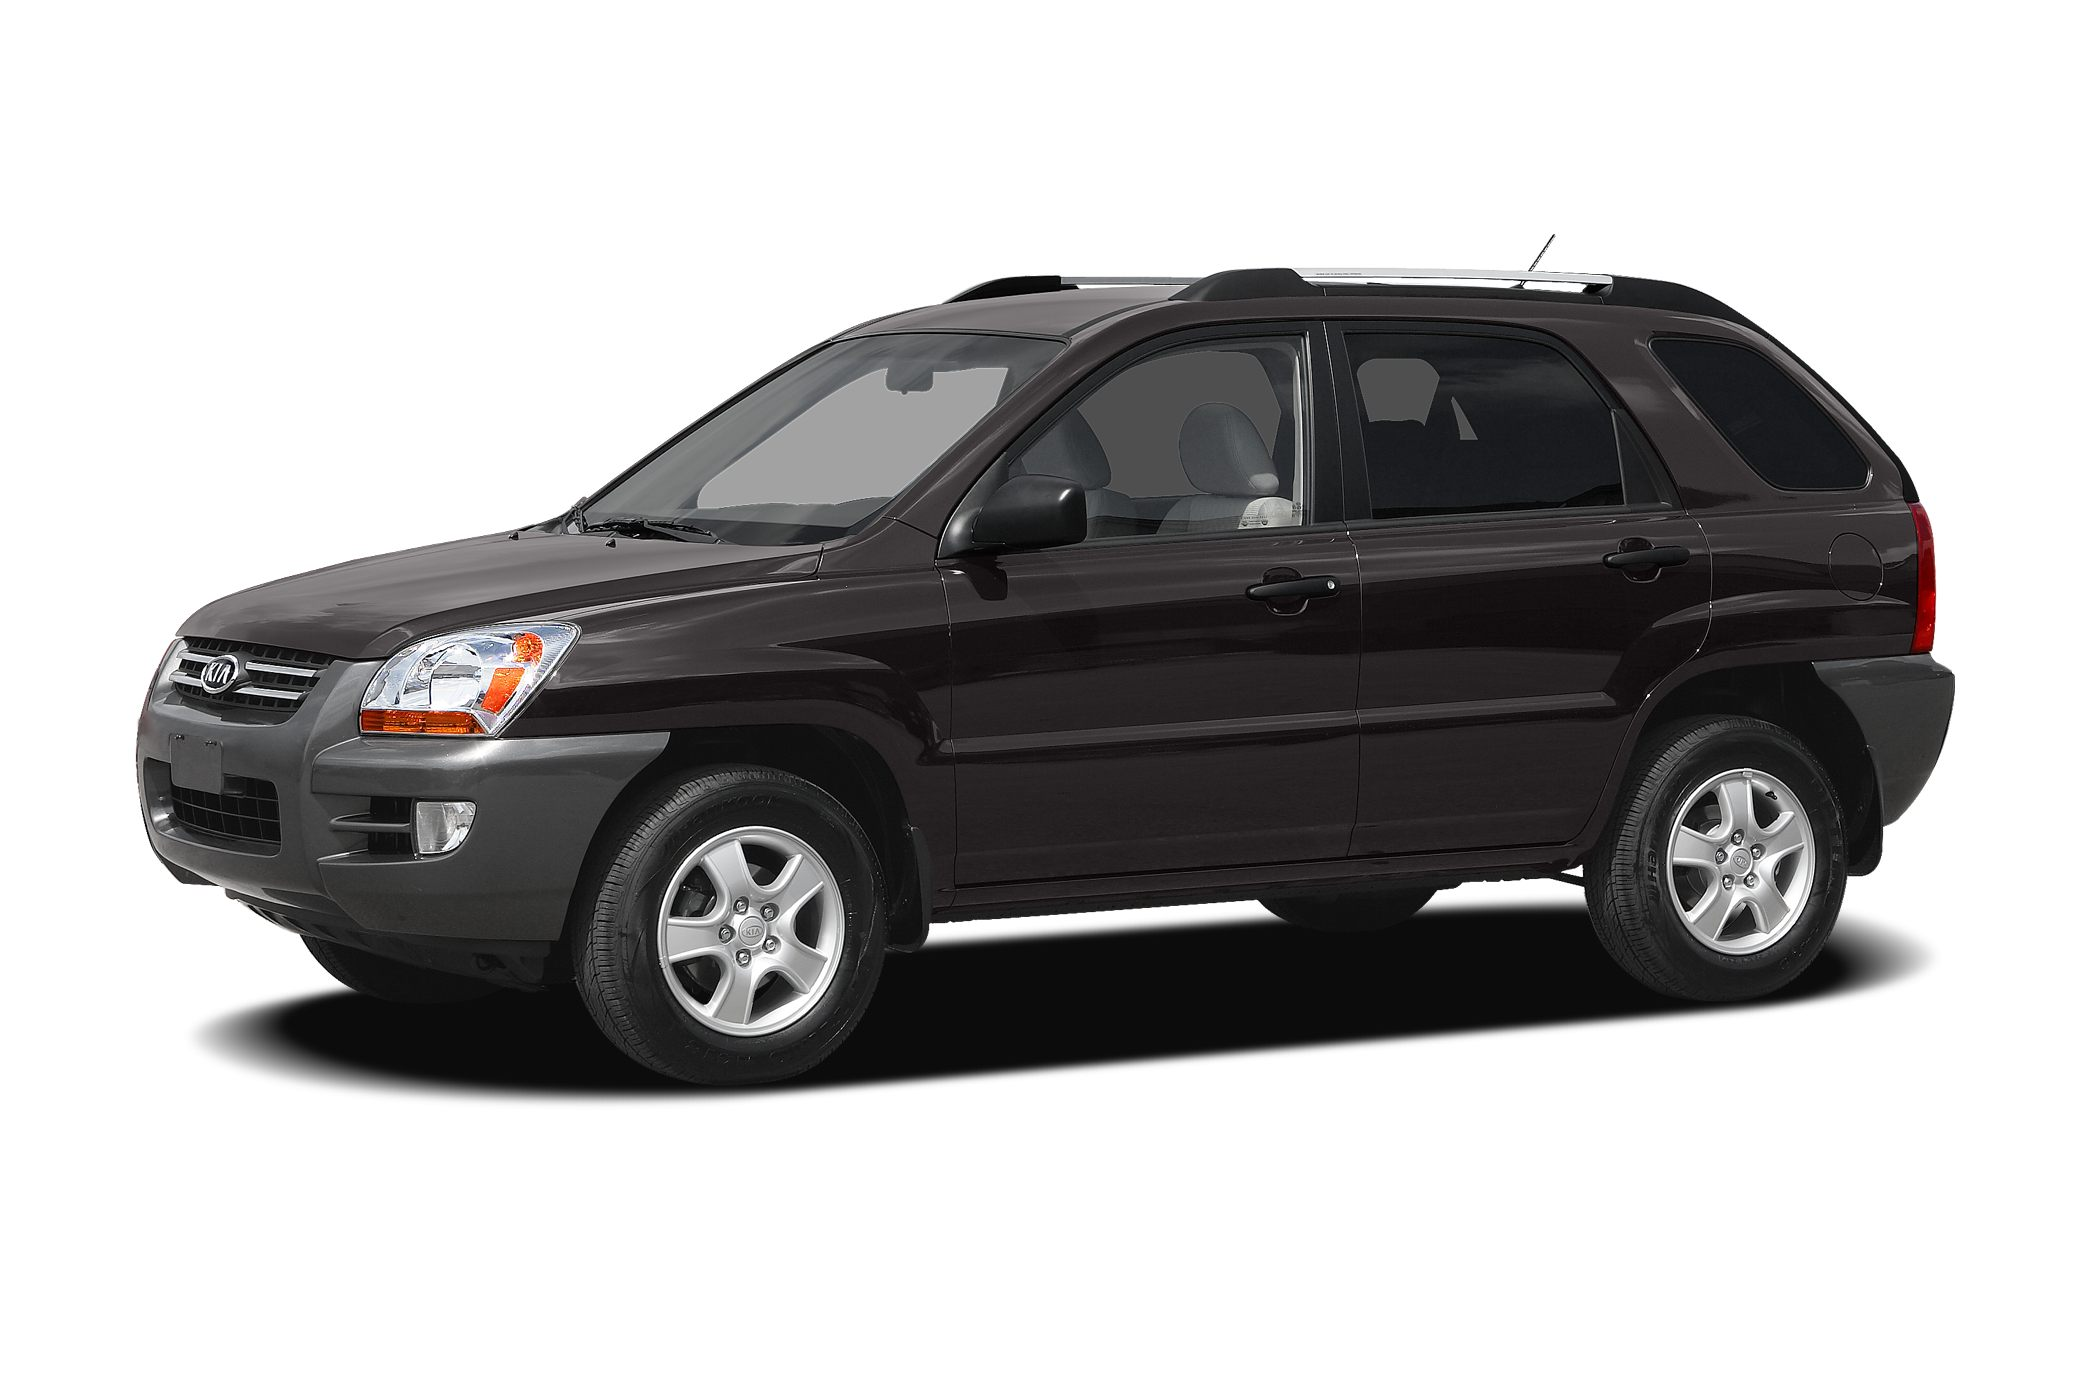 2006 Kia Sportage LX SUV for sale in Bradenton for $7,551 with 126,385 miles.